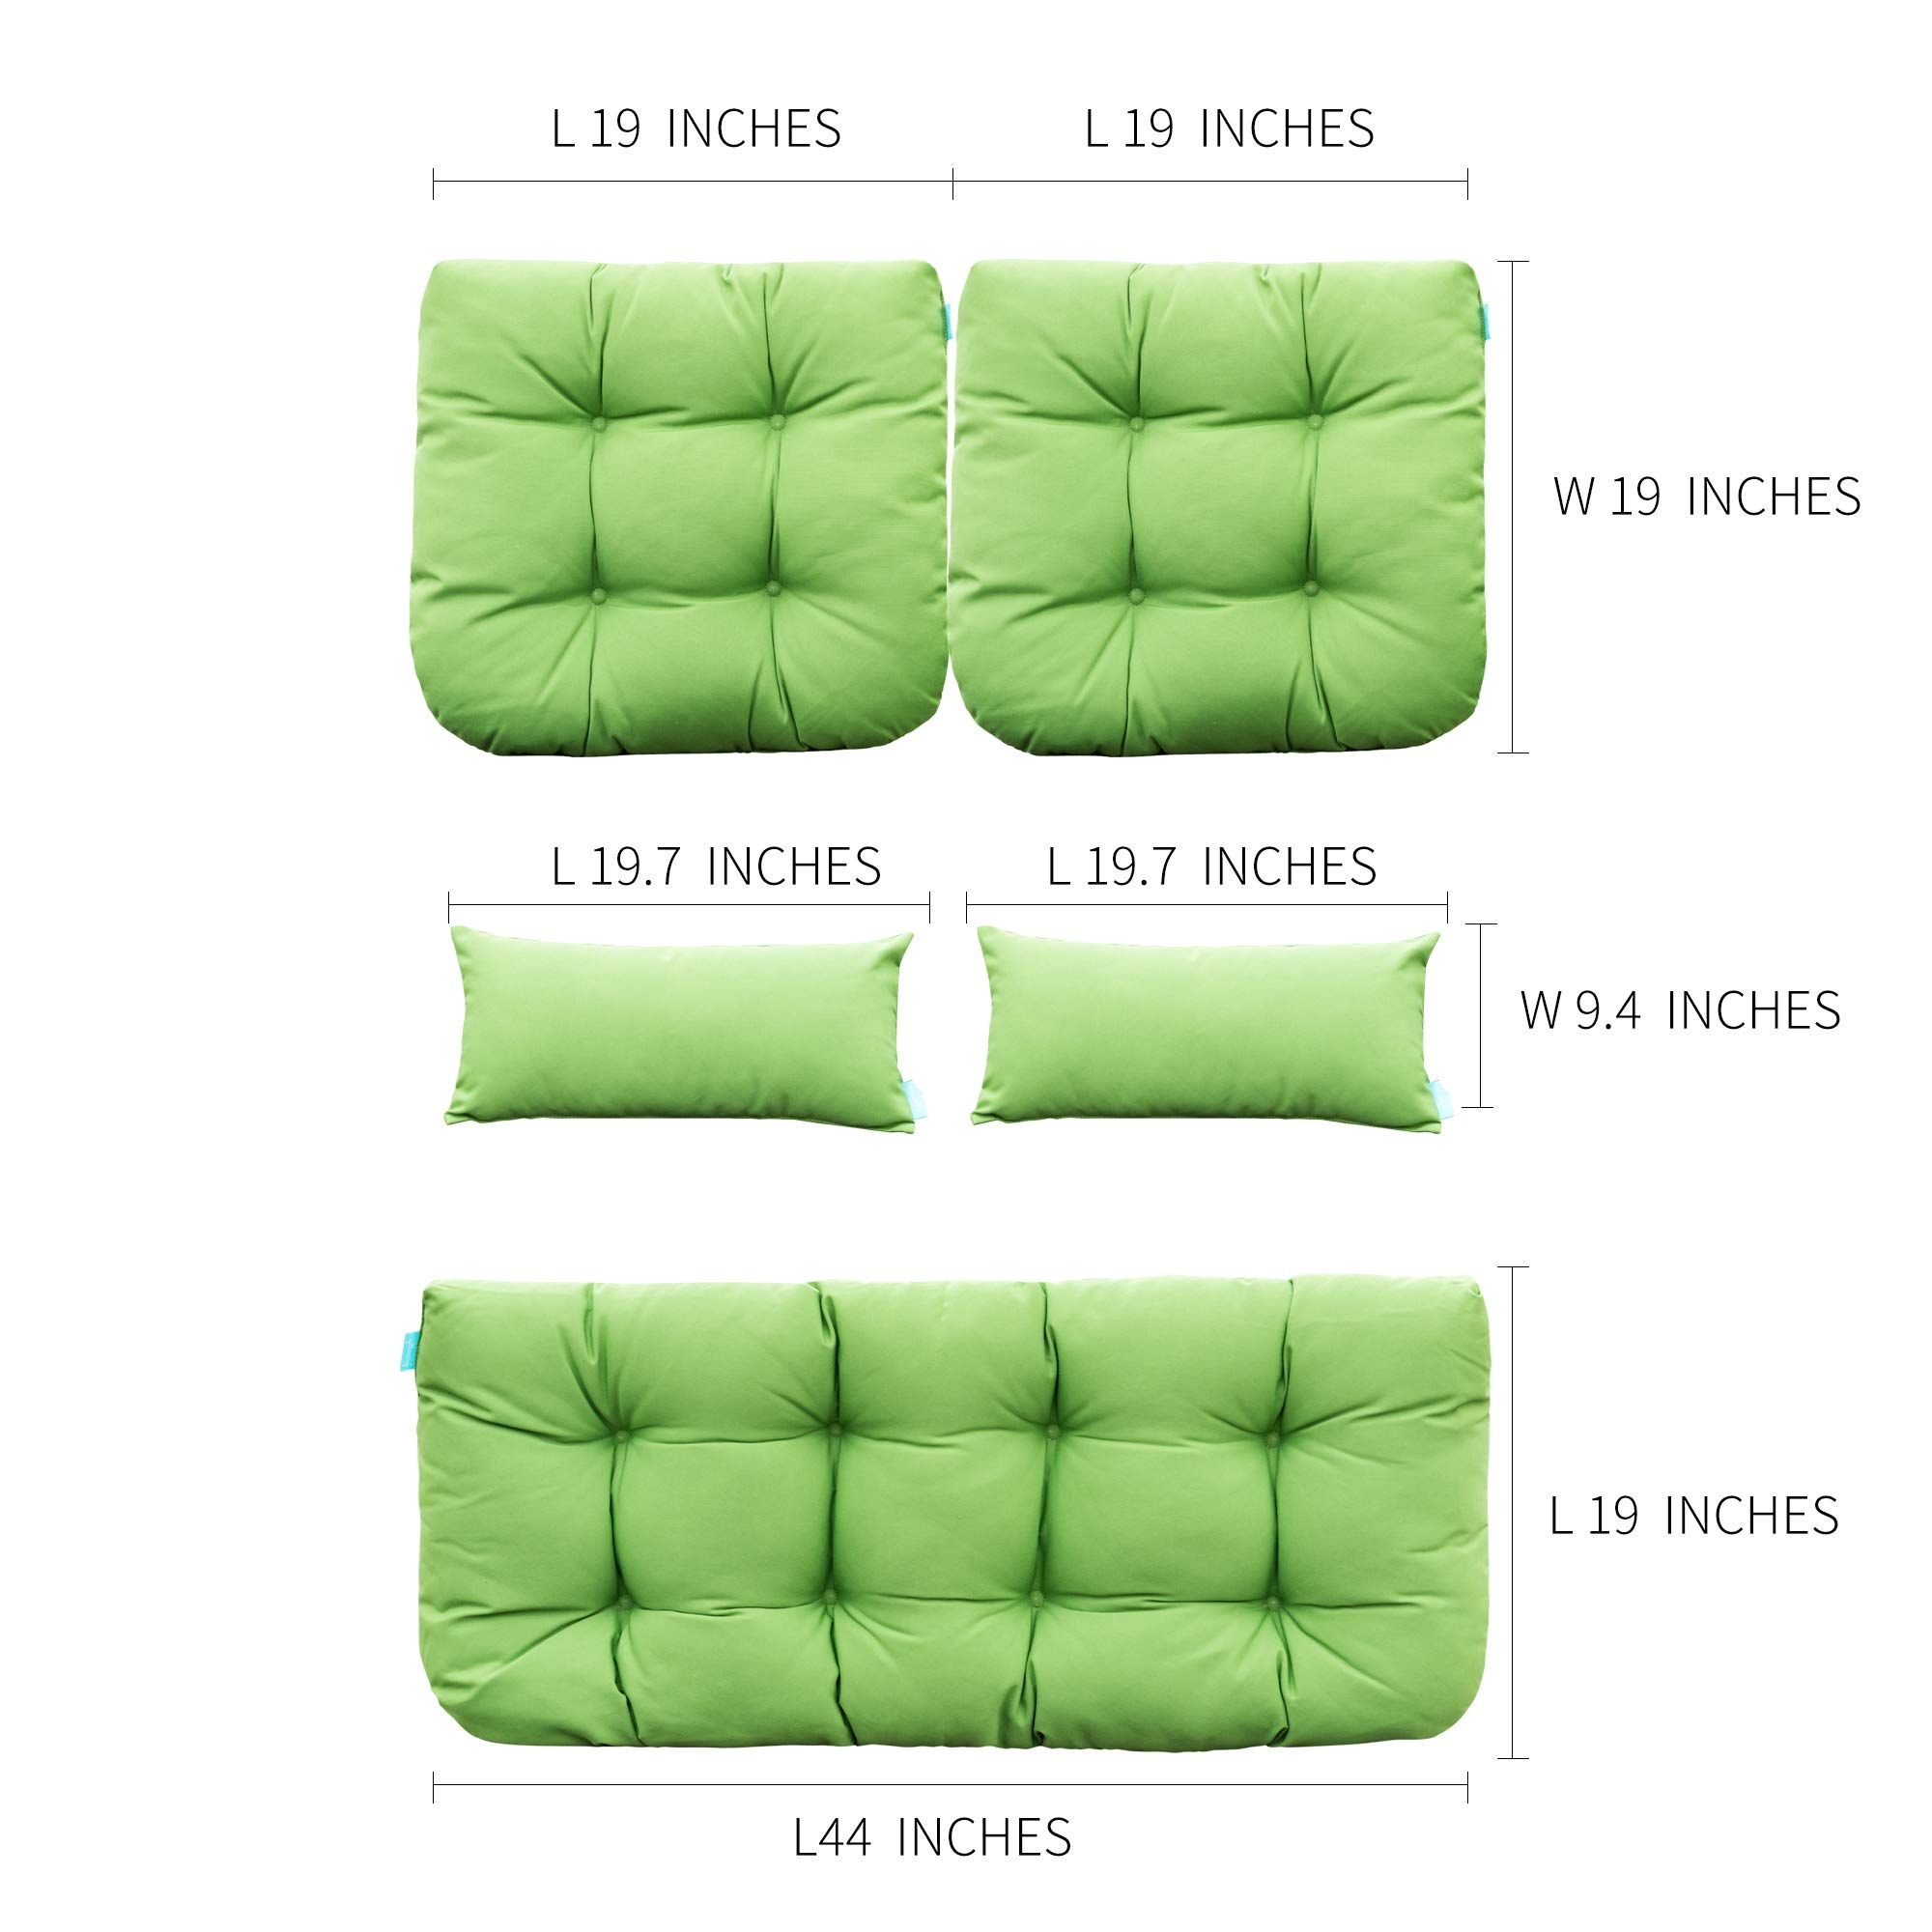 Qilloway Outdoor Cushions Loveseat Furniture In 2020 Furniture